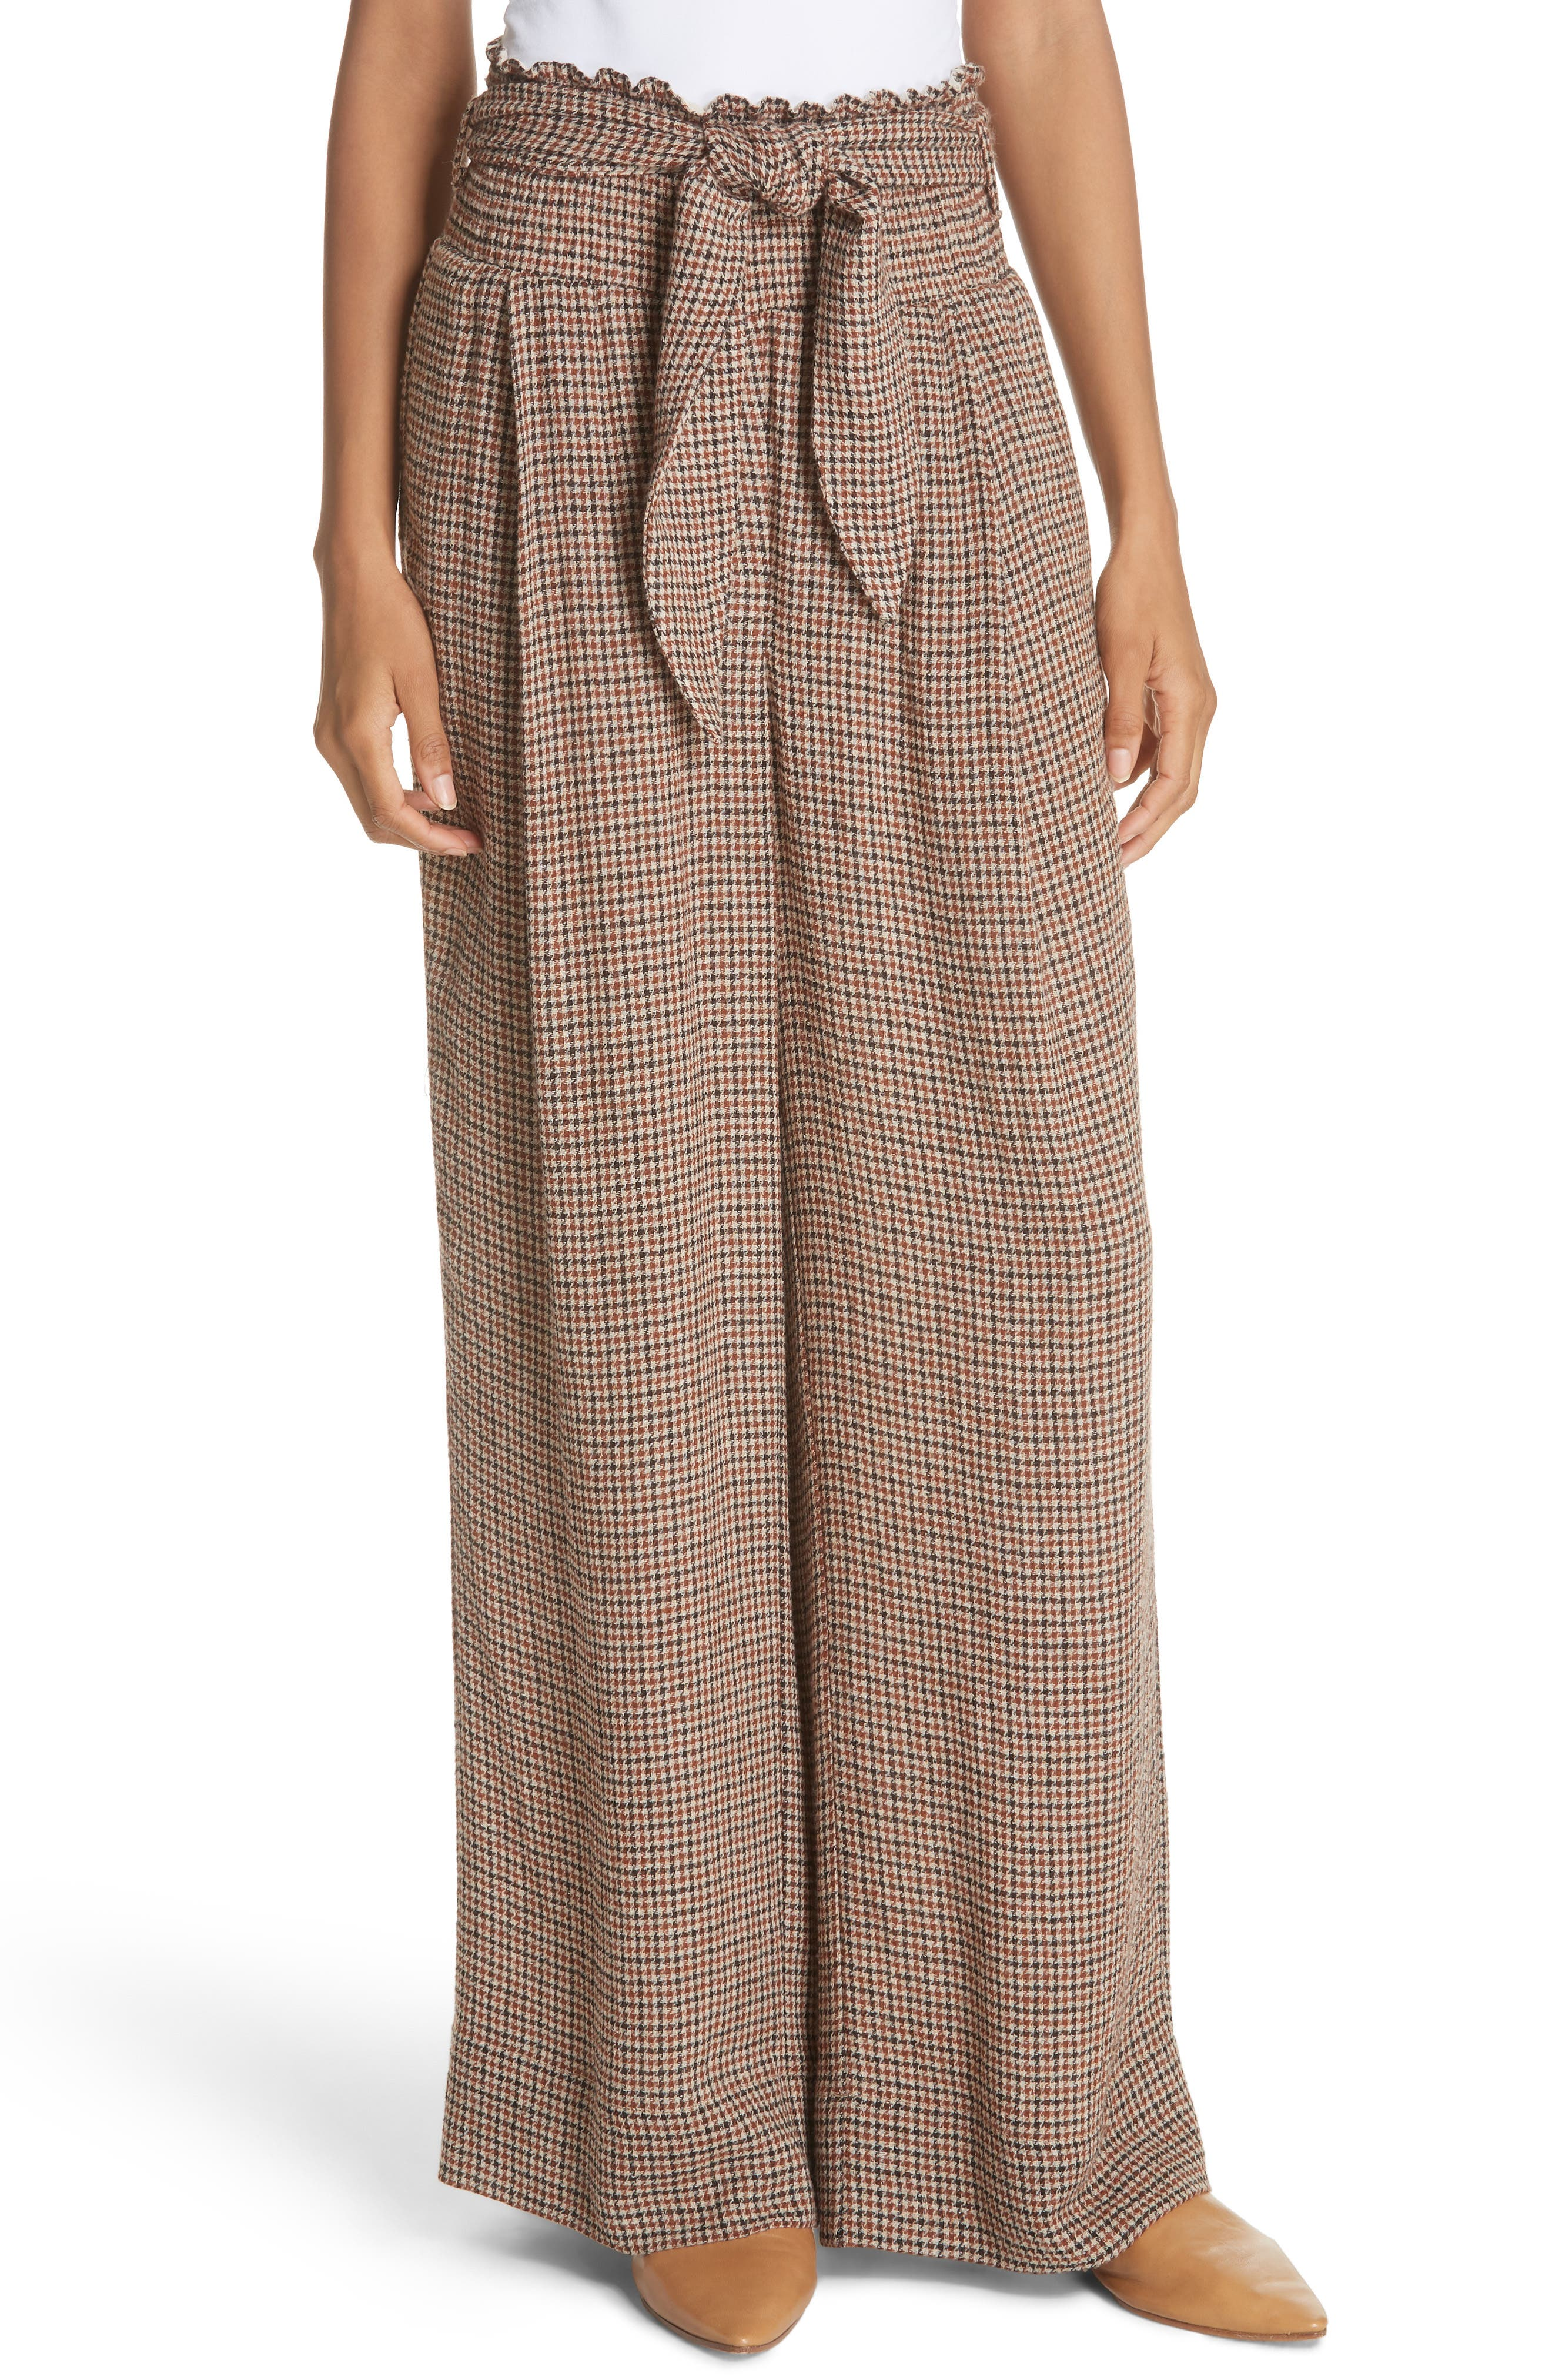 Private Houndstooth Tie Waist Pants,                         Main,                         color, CHECK